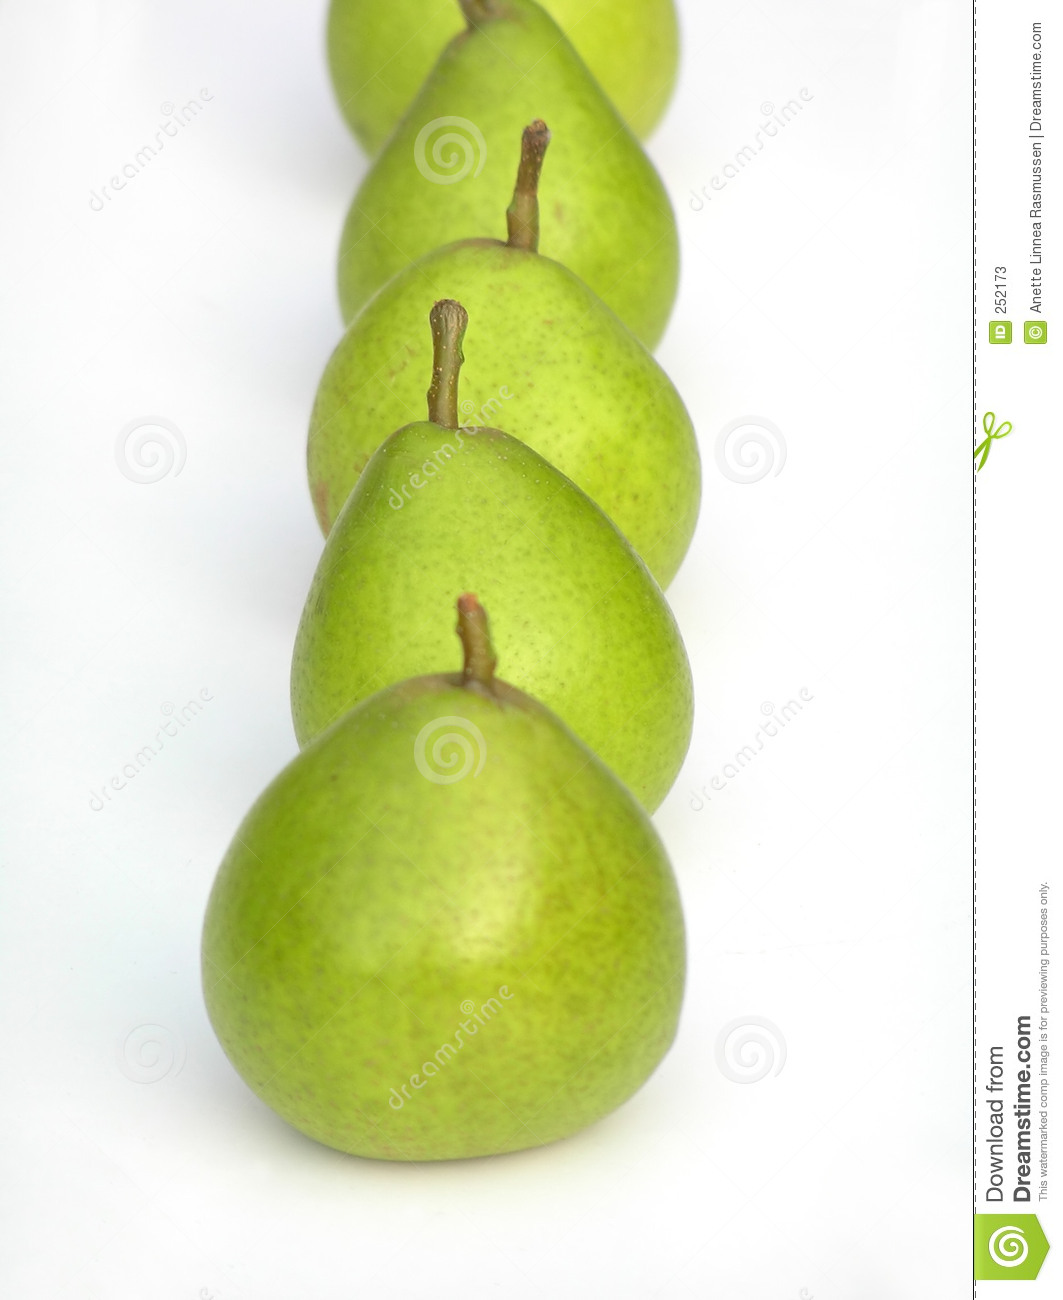 Row of green pears